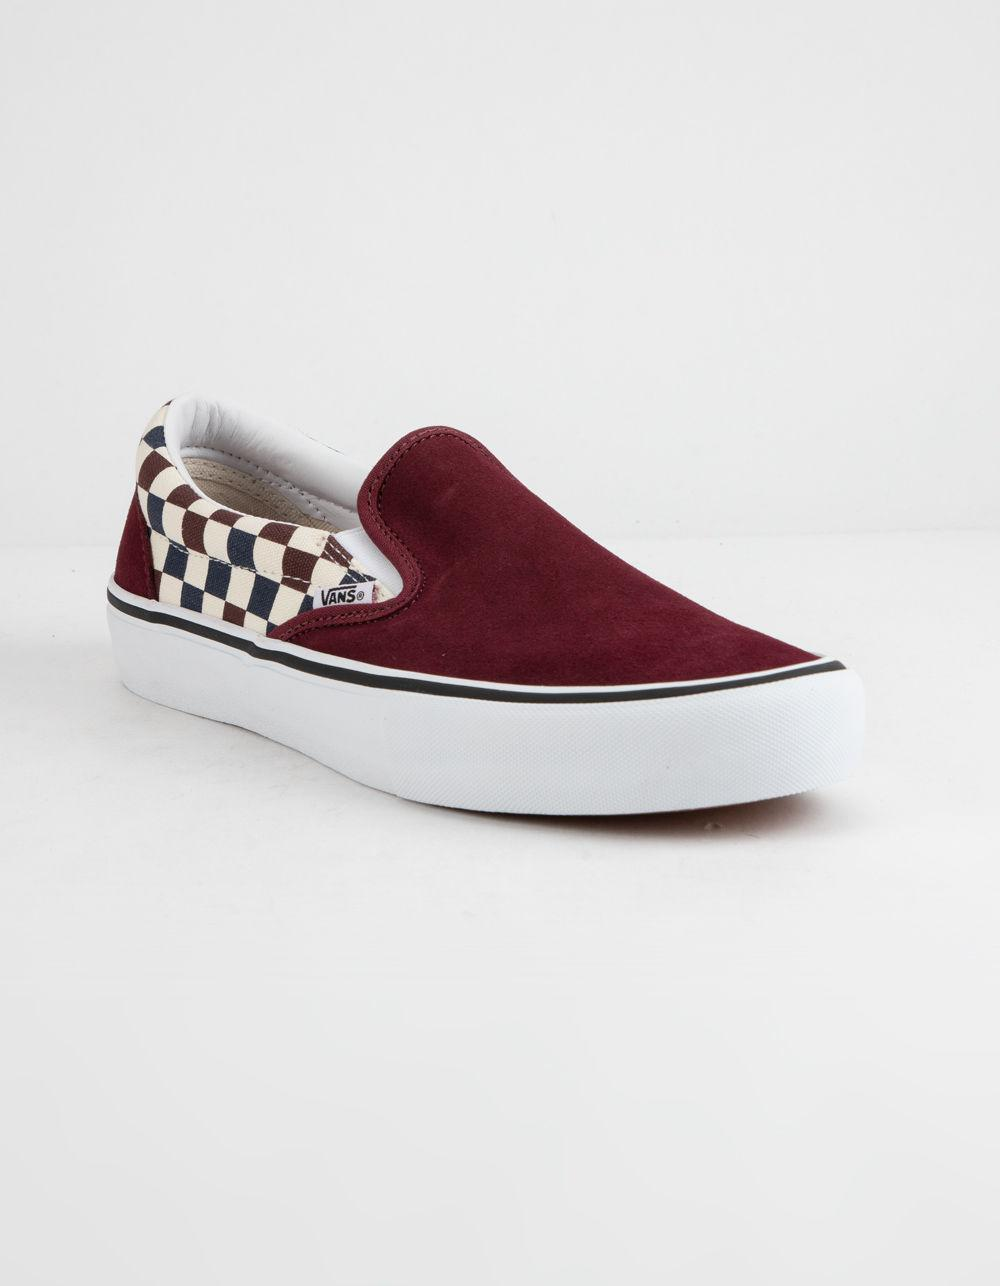 26423f6a8f74 Lyst - Vans Checkerboard Slip-on Pro Port Royal Royal Shoes in Red